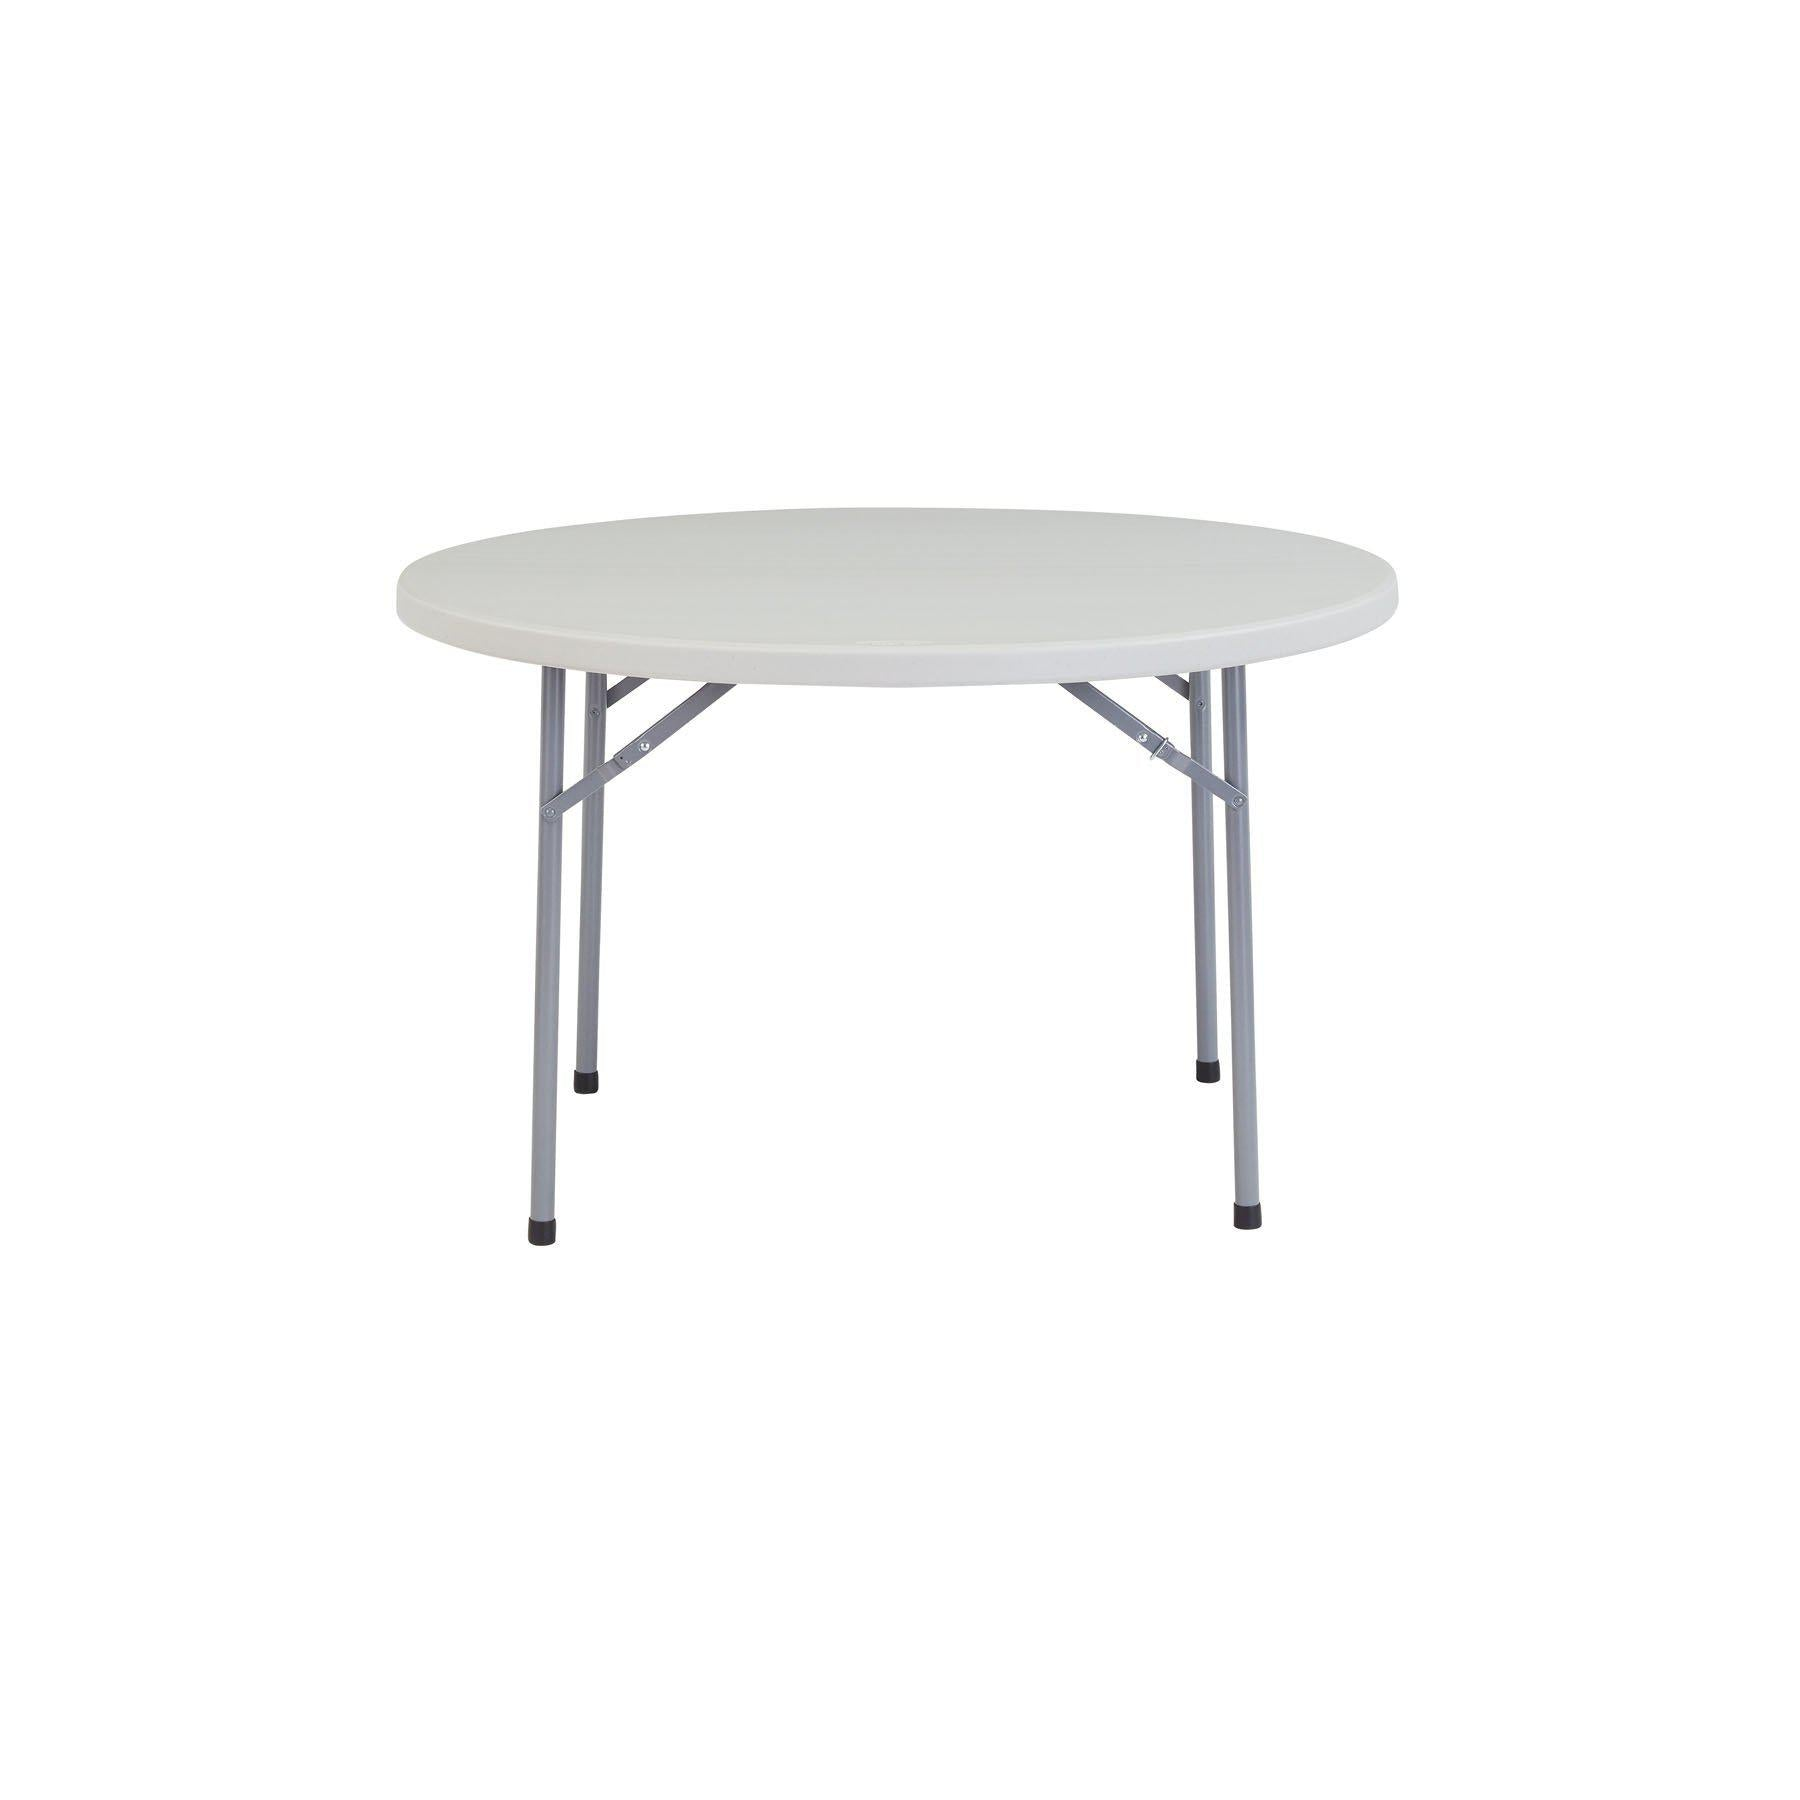 "Heavy Duty Round Folding Table, Speckled Grey-Tables-48"" Round-"